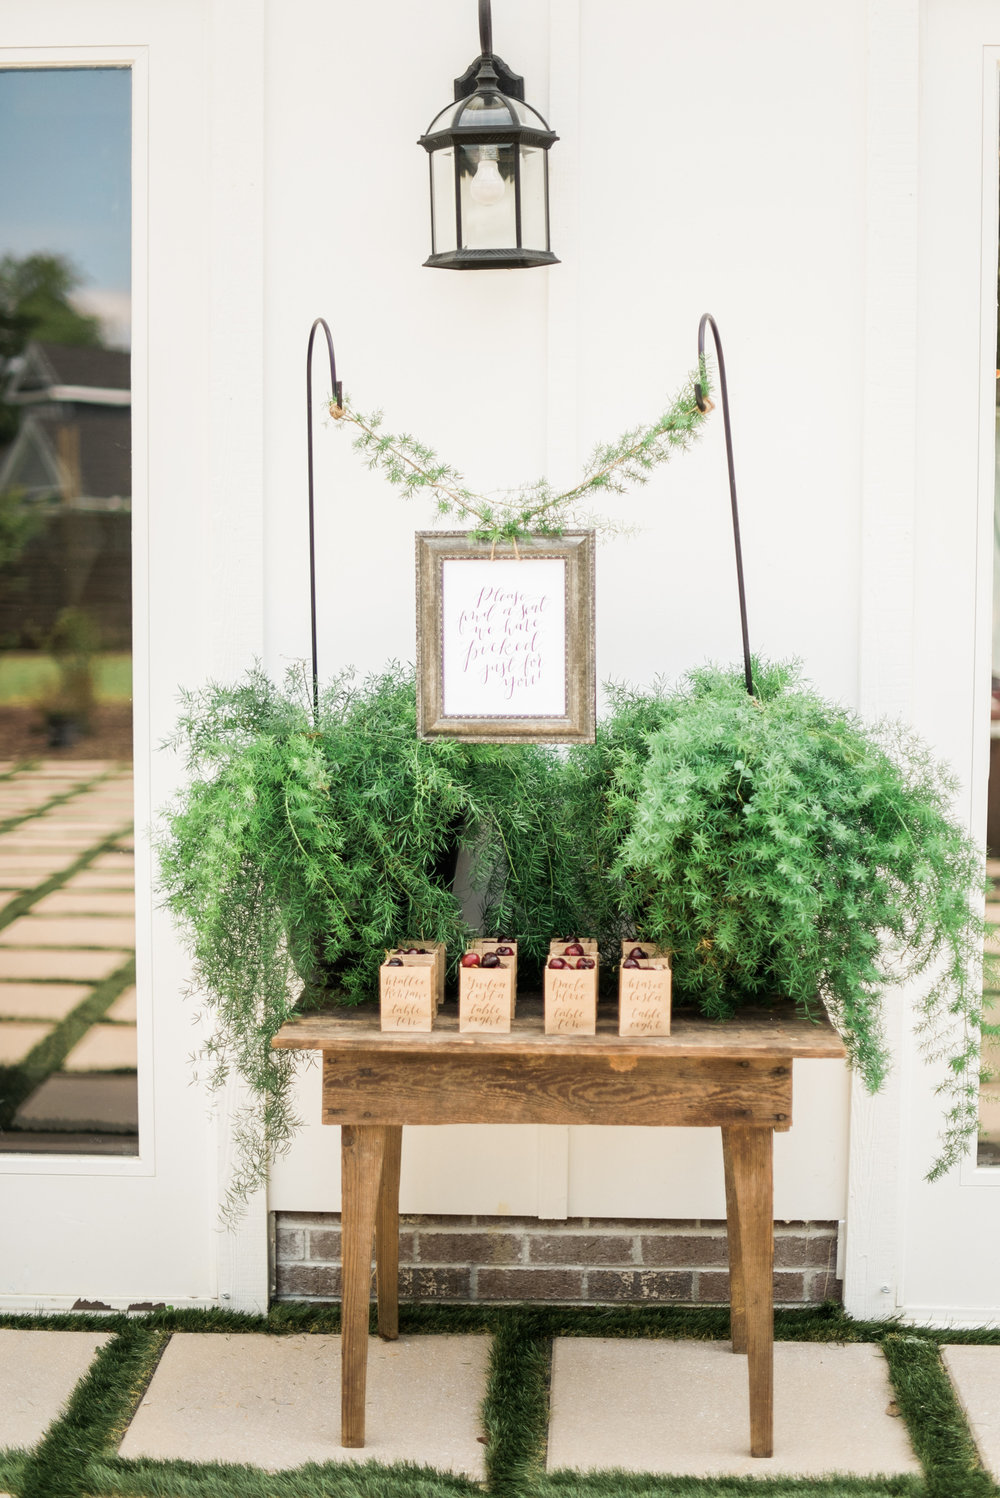 These potted plants were a unique way to frame the seating display and can also be used after the wedding in your own home!